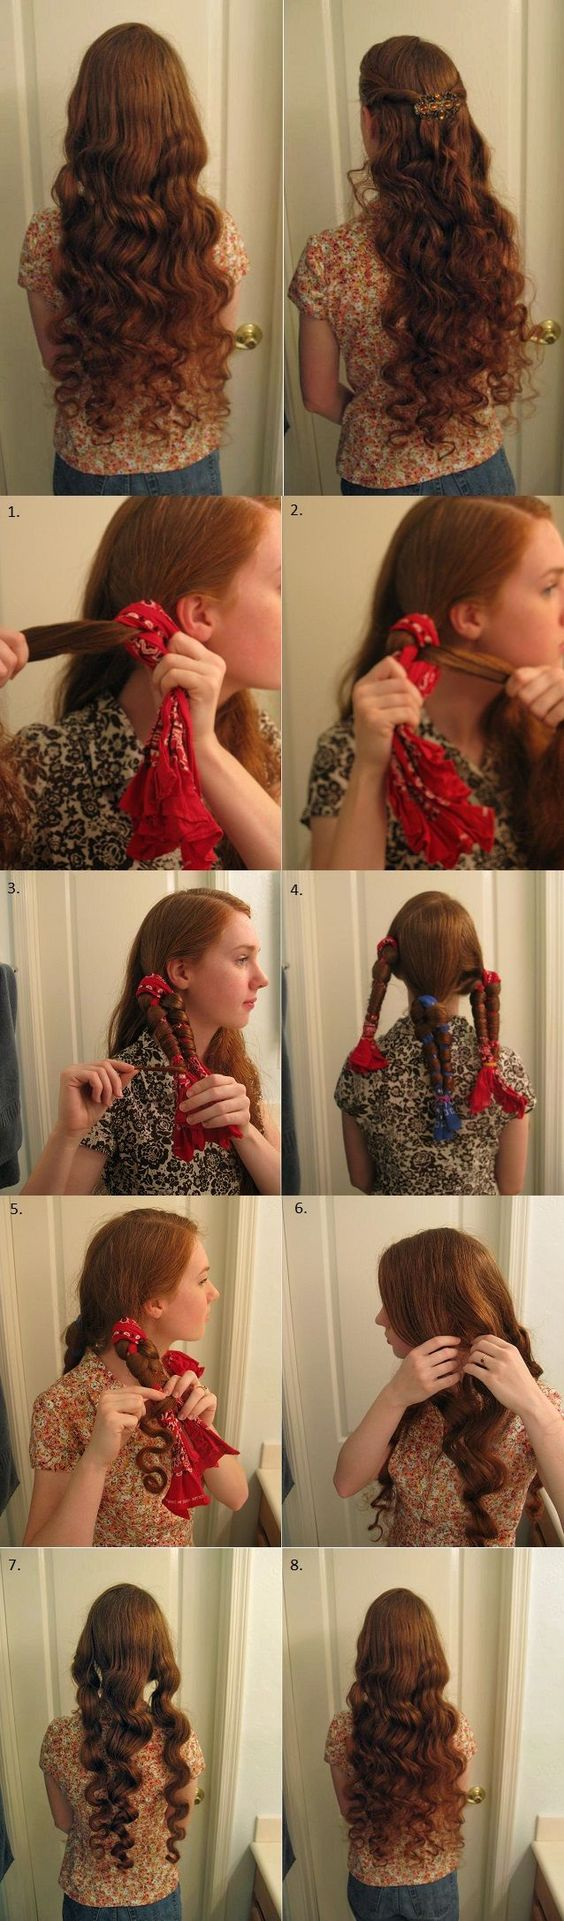 No Heat Curls. This is brilliant! I love the fuller curls and ease of braiding.